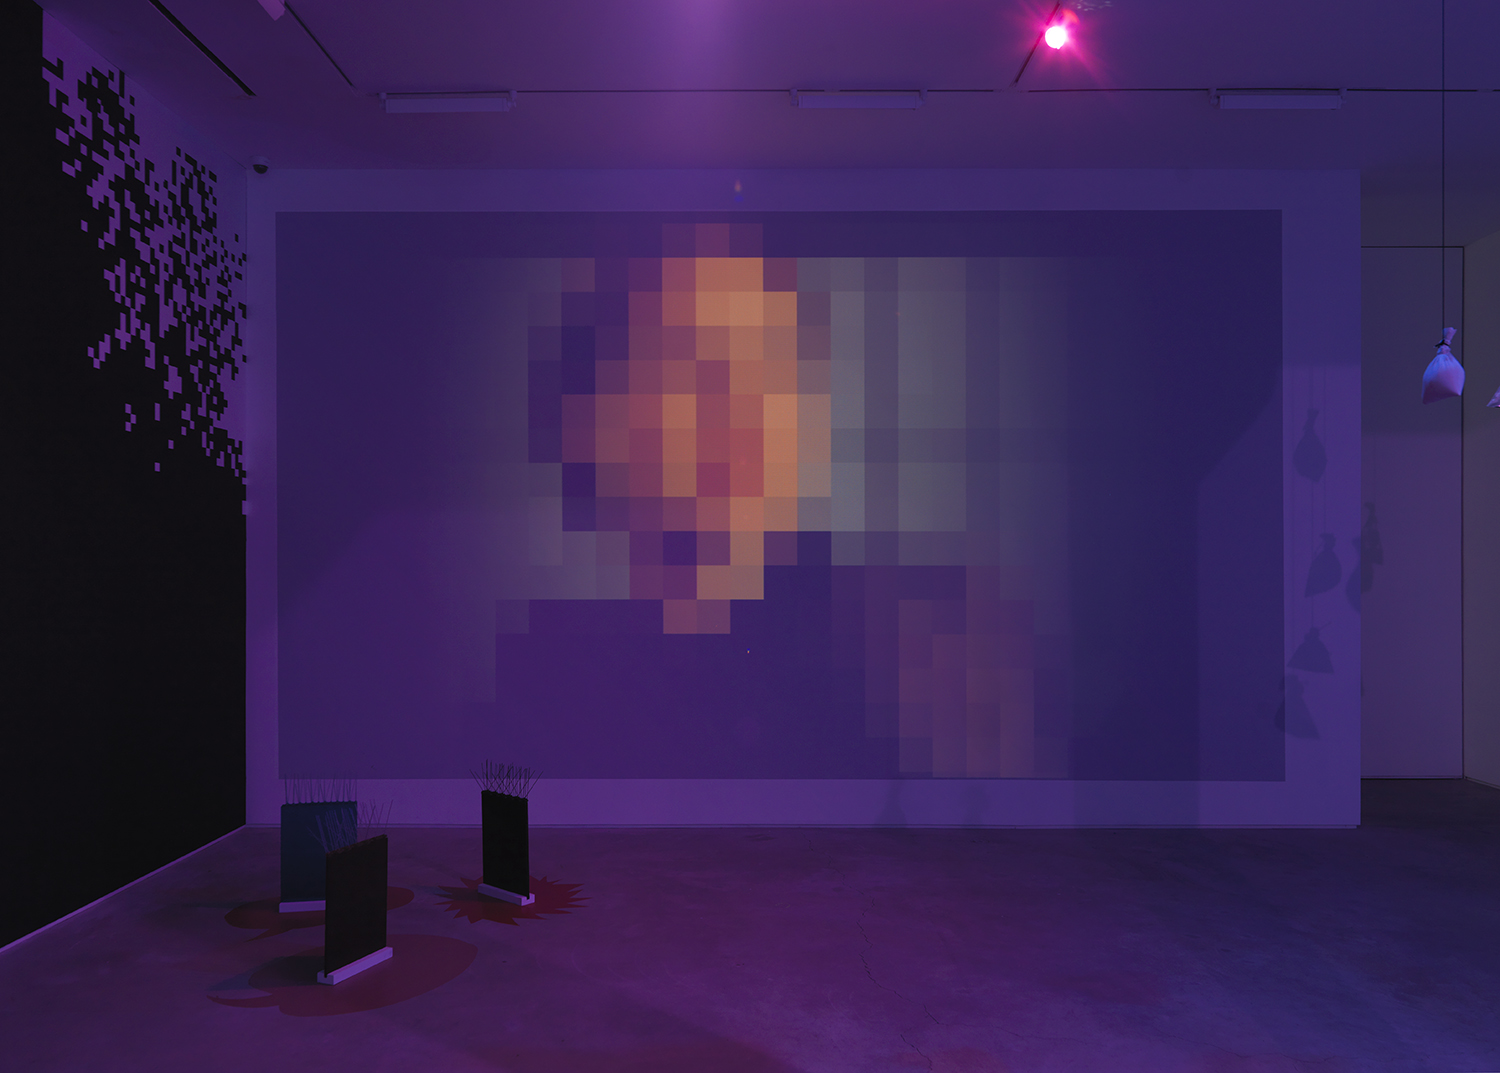 Stealing one's own corpse (an alternative set of footholds for an ascent into the dark) Part 2 – Swimming in rivers of glue – The perspective of perspective. 2016, digital video projection, 9 minutes 57 seconds, dimensions variable